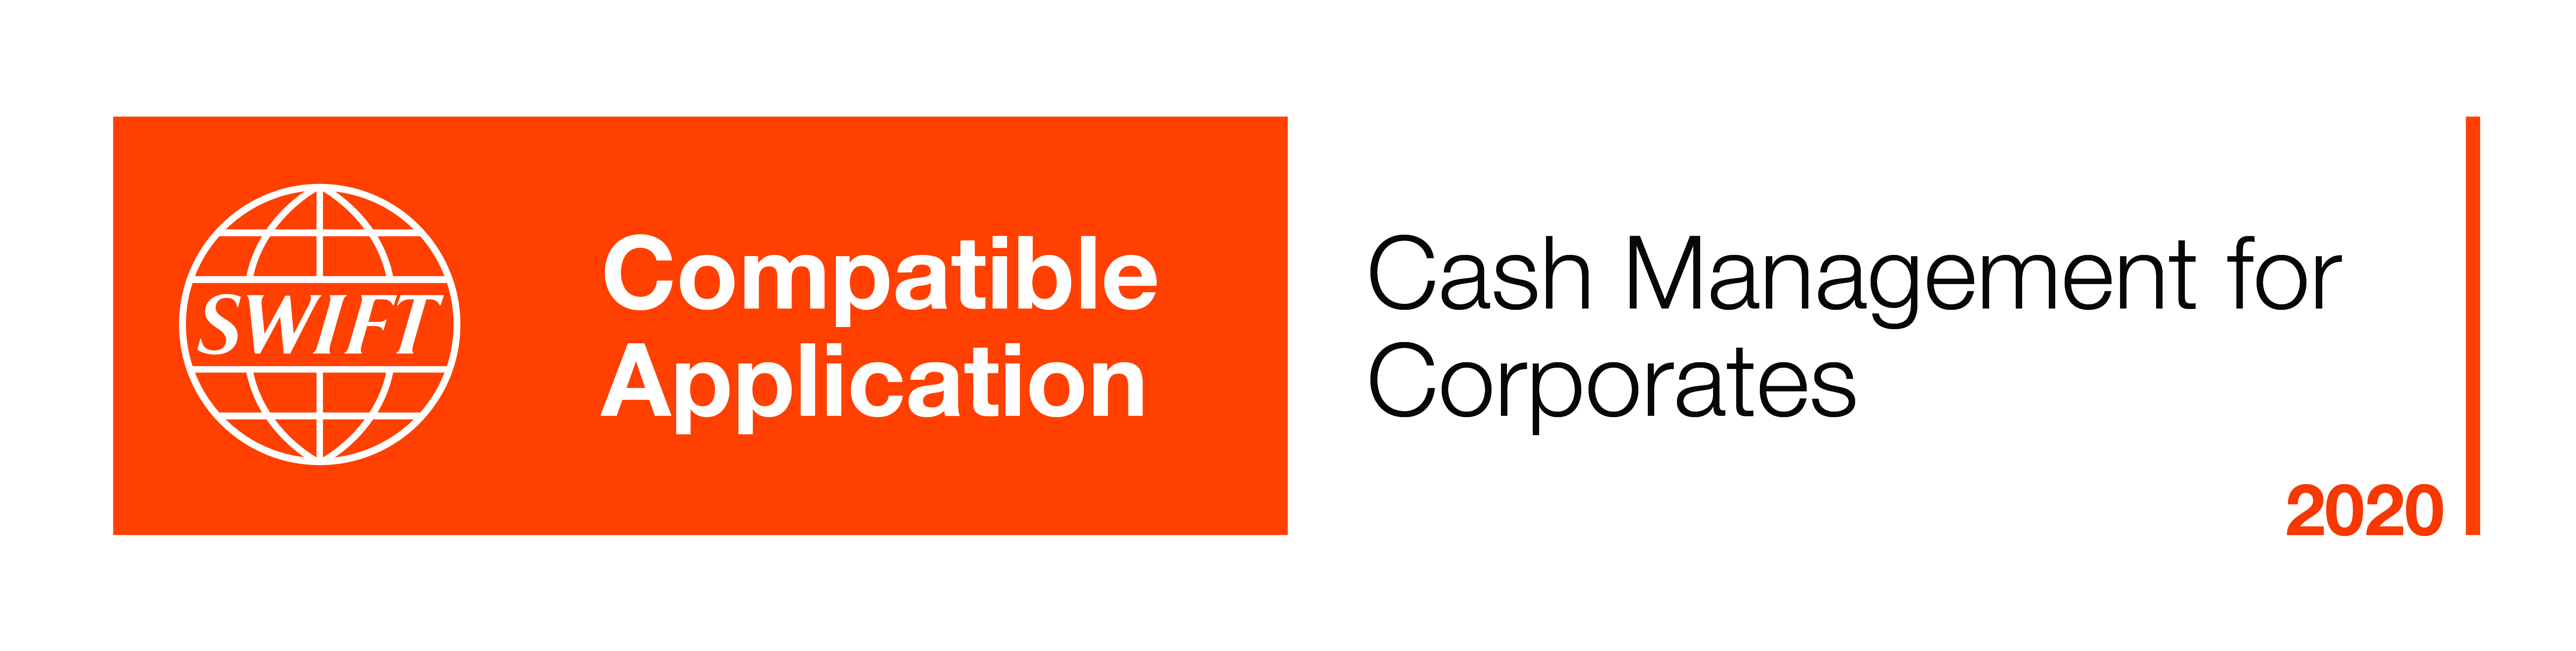 SWIFT Compatible Application Cash Management for Corporates 2020_high res